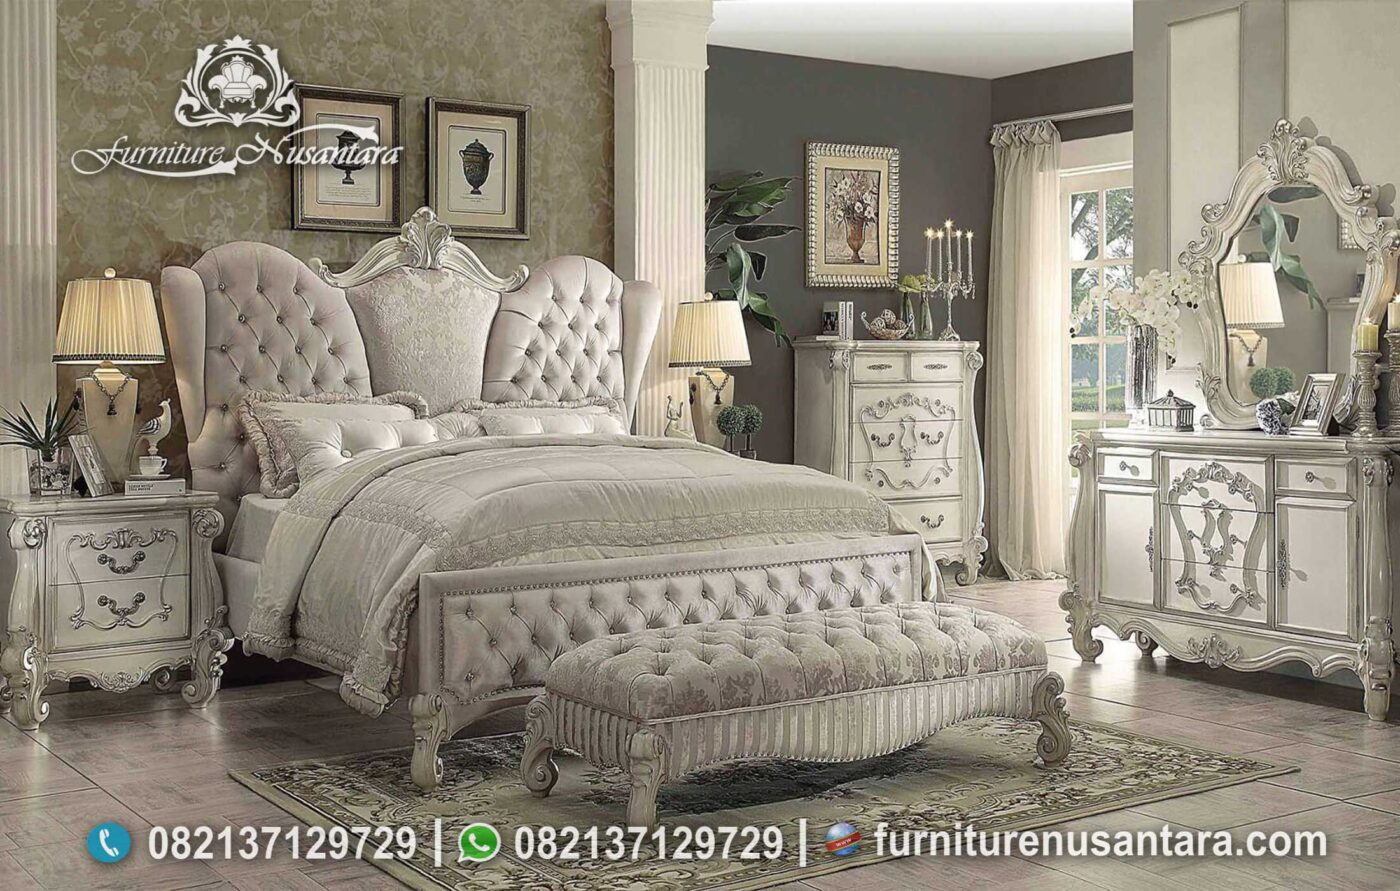 Bed Set Luxury Kourtney Kardashian Model KS-168, Furniture Nusantara